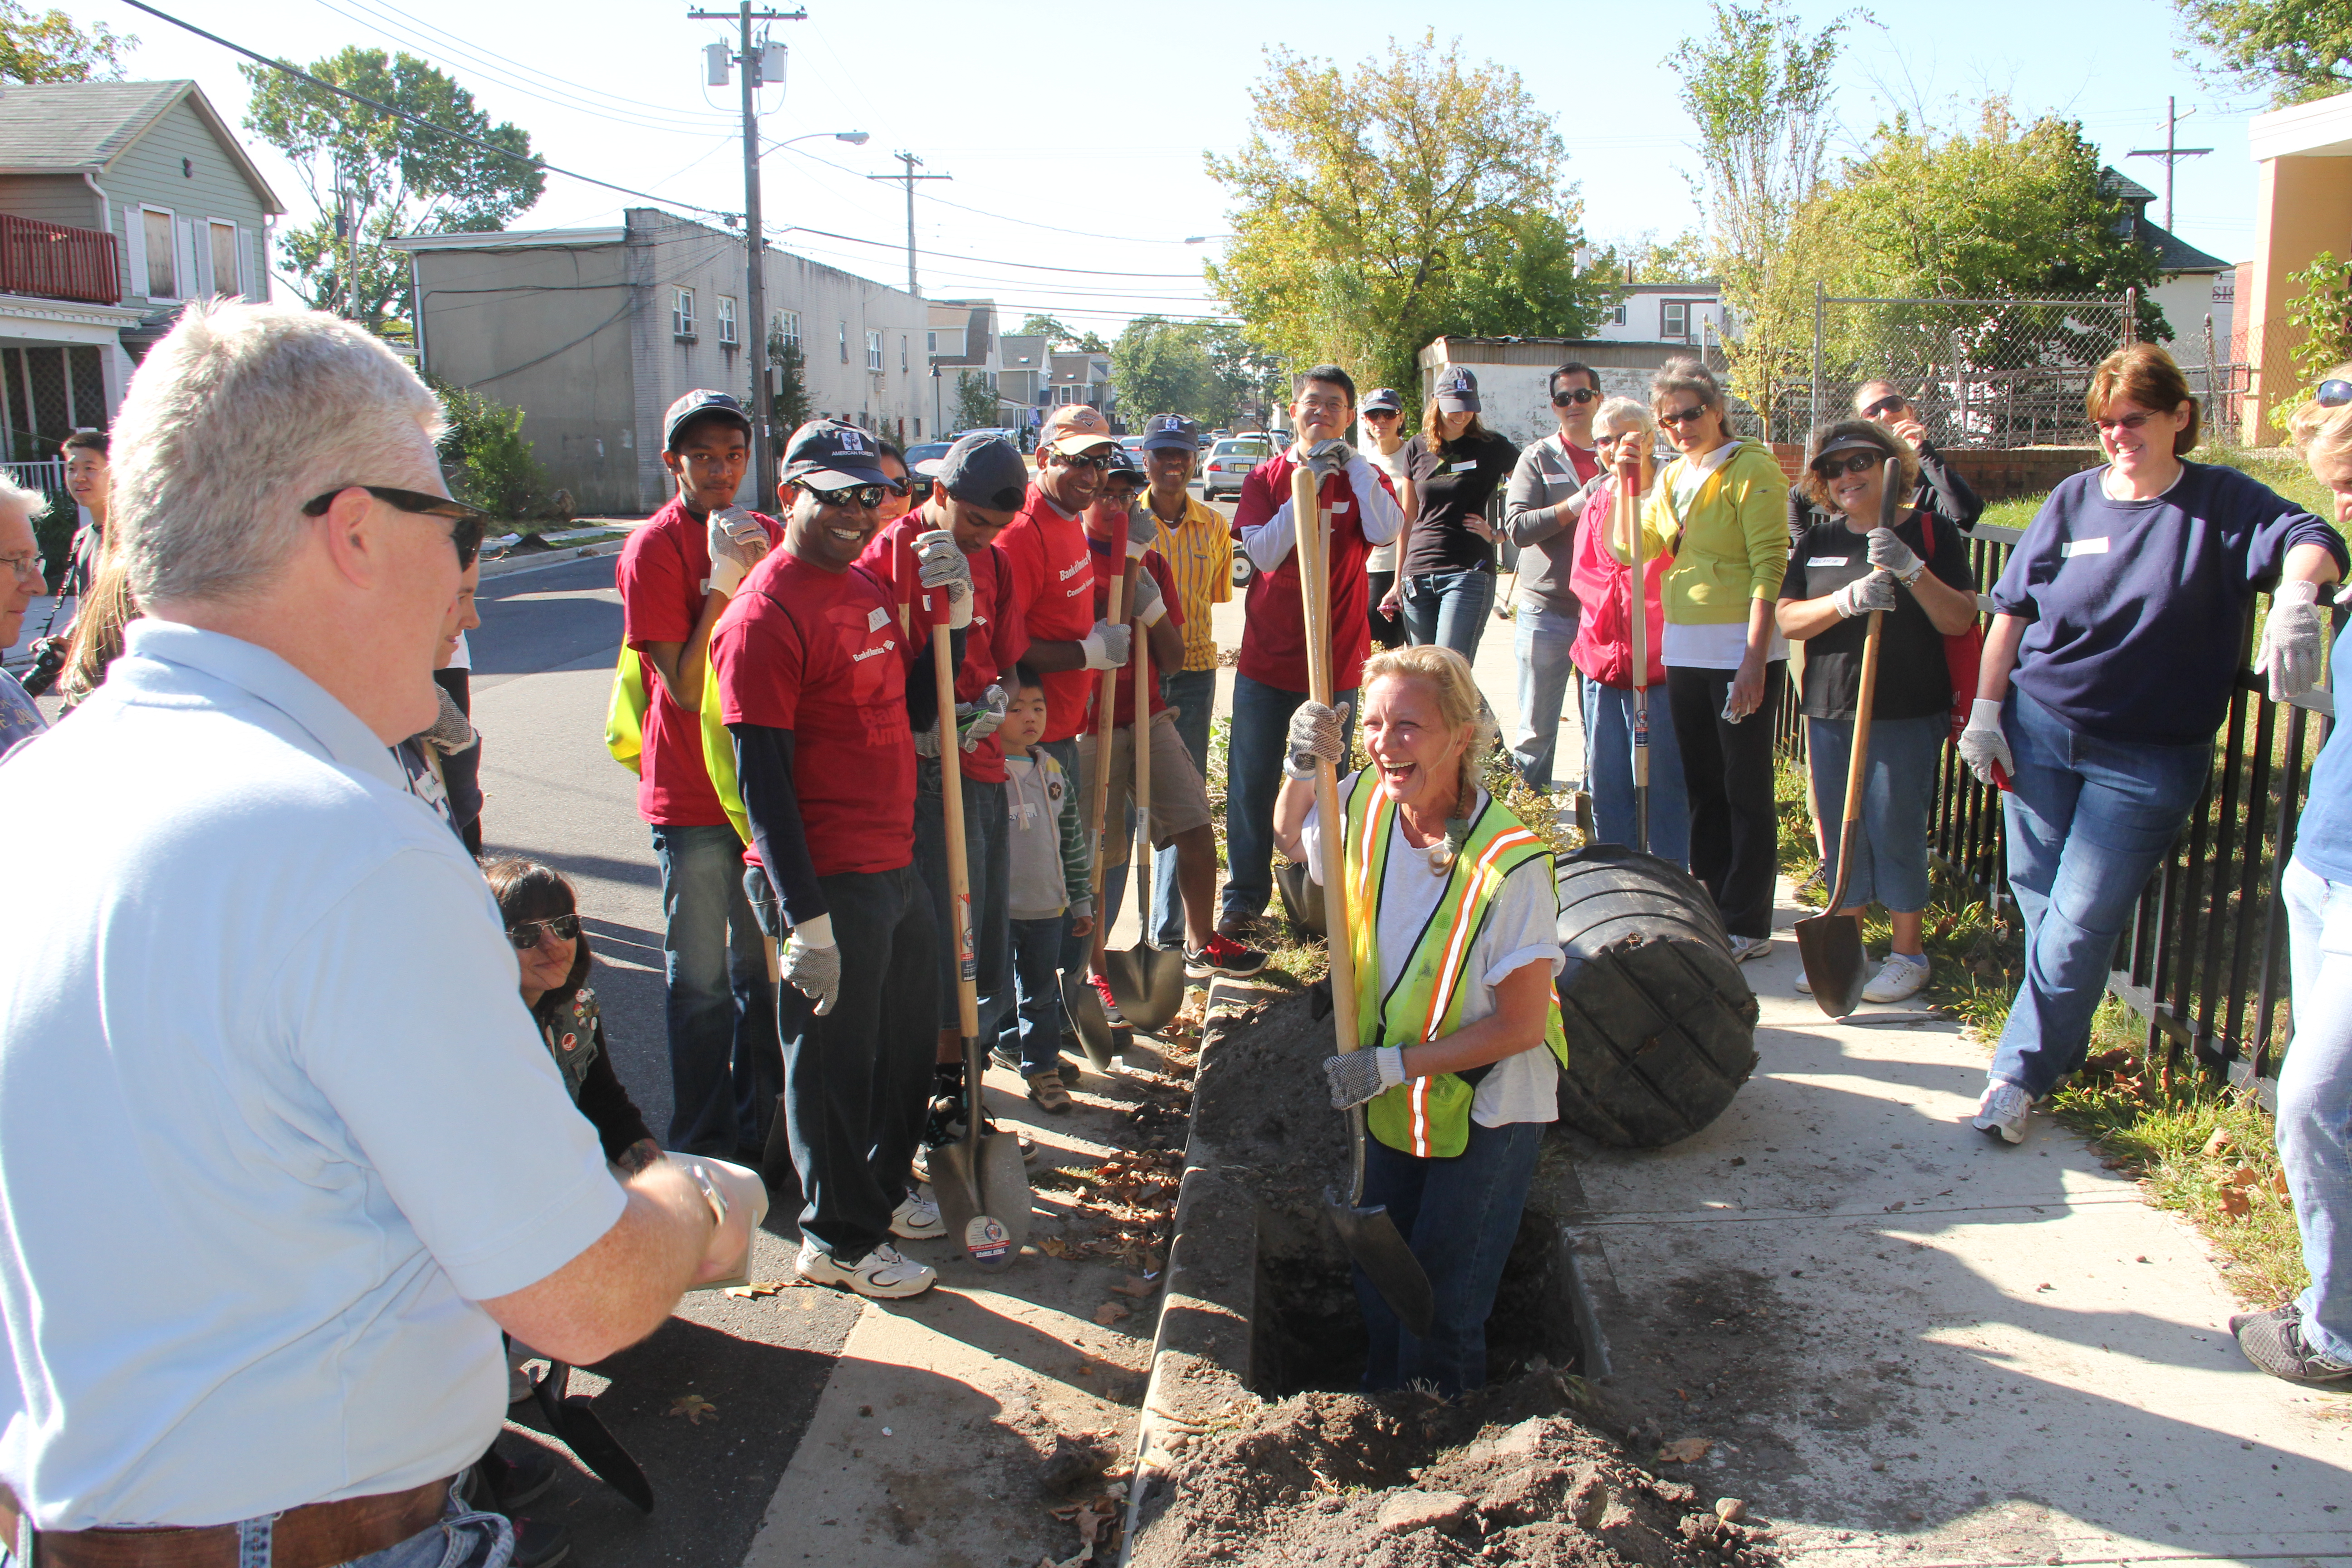 The first Community ReLeaf planting event took place is Asbury Park, N.J. with sponsor Bank of America Foundation